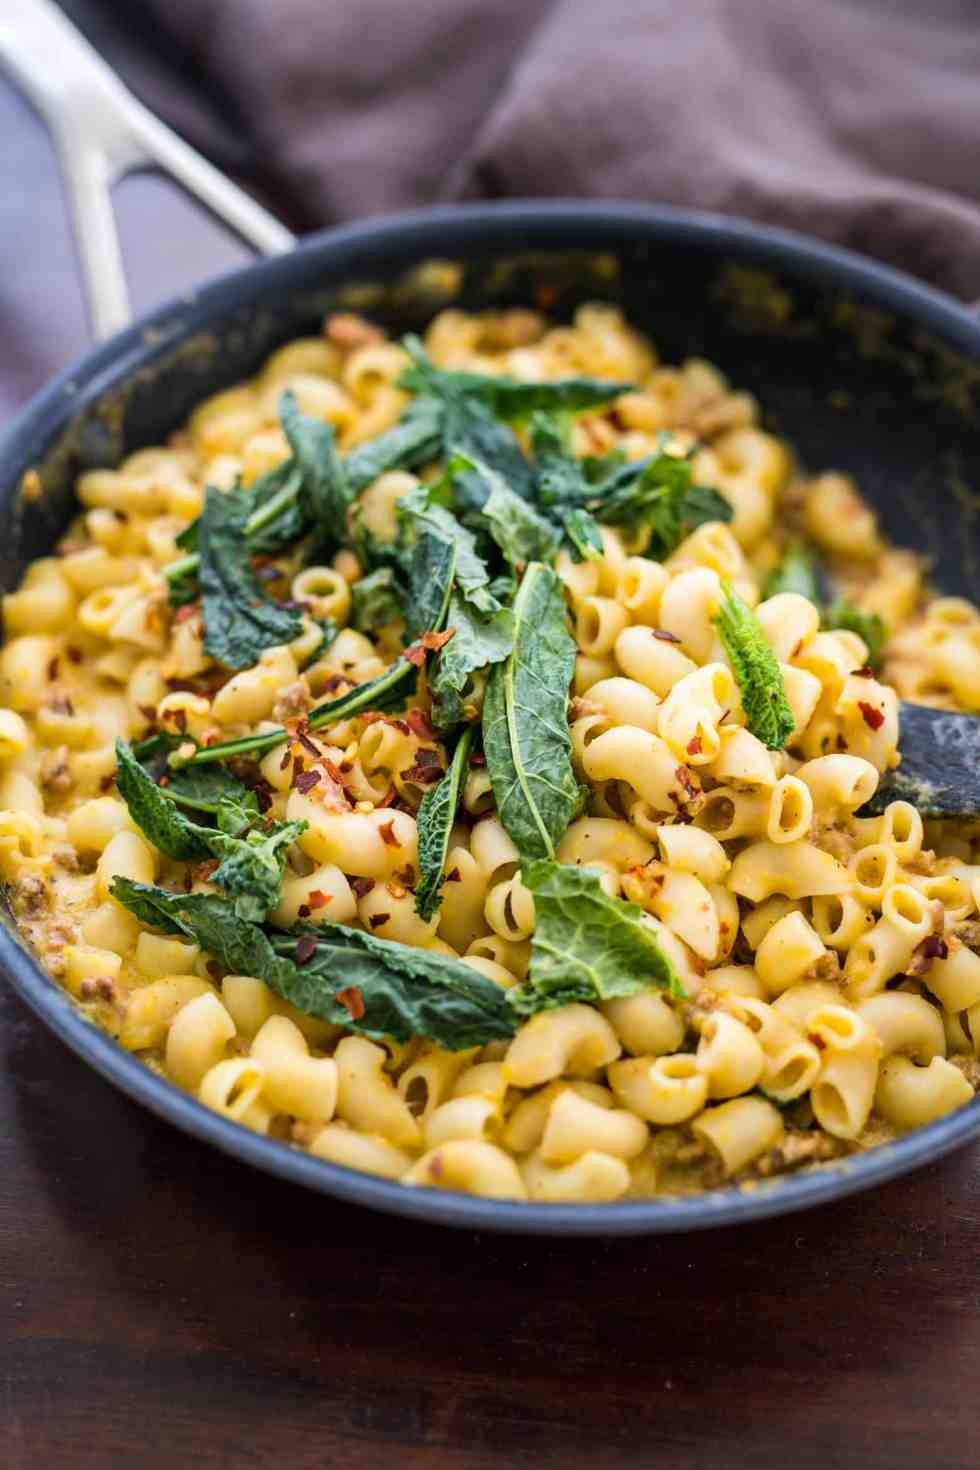 Creamy pumpkin sausage mac and cheese with kale is pure comfort food! It's a fast, easy dinner recipe when you crave homemade pasta in a bowl.